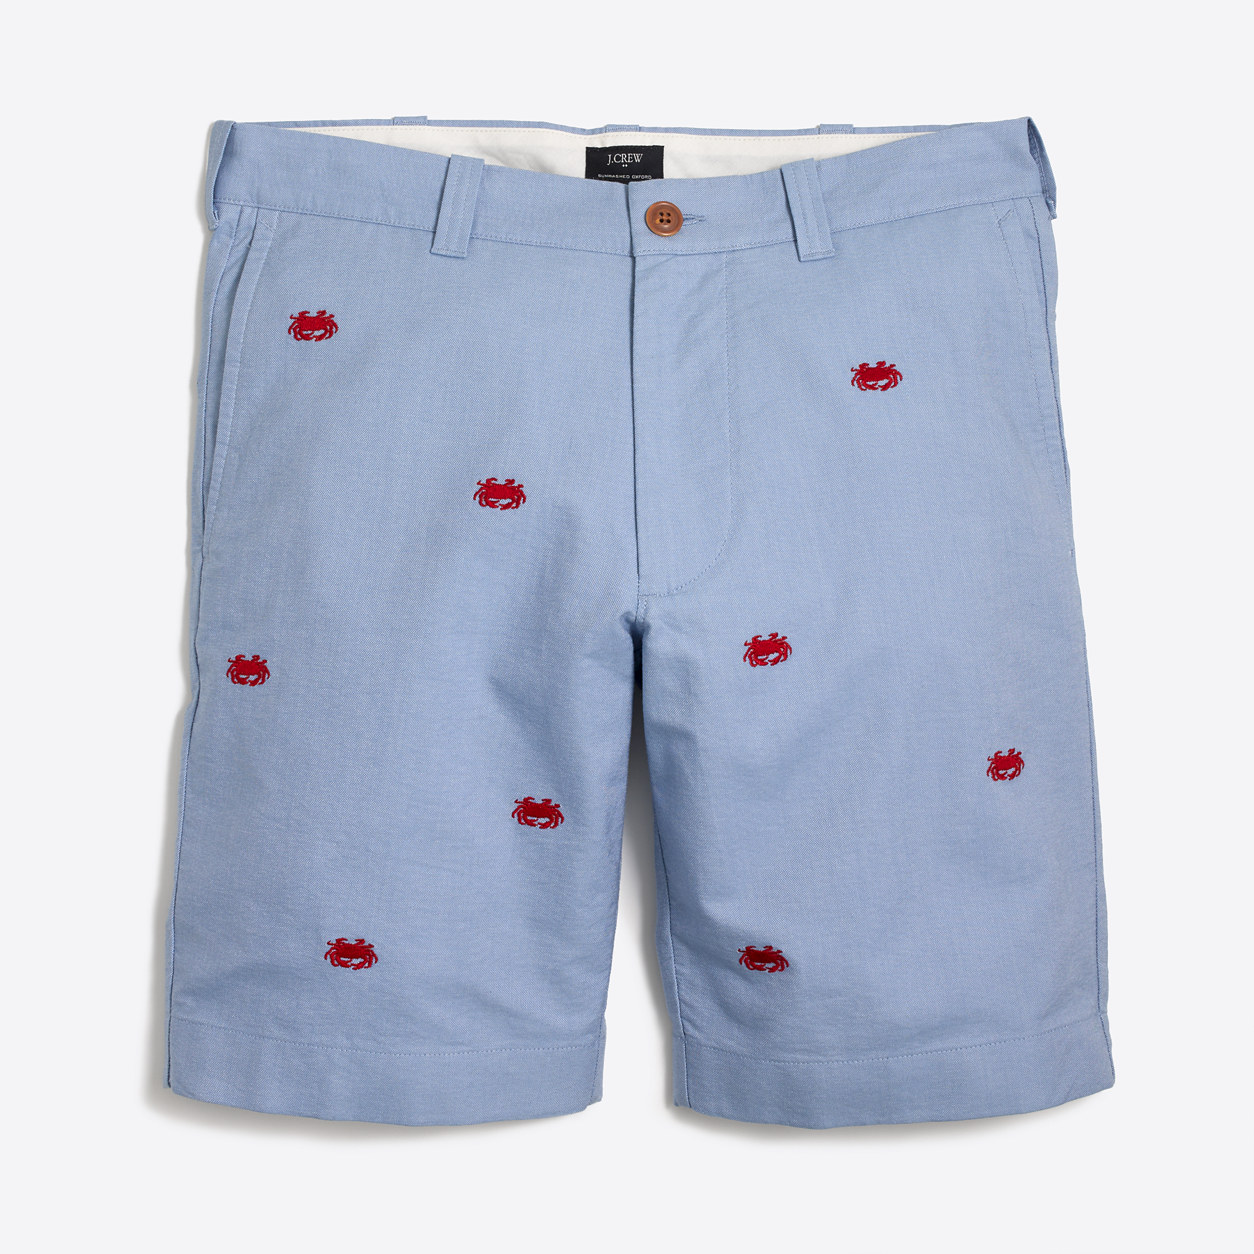 Men's Shorts | J.Crew Factory - Printed and Patterned